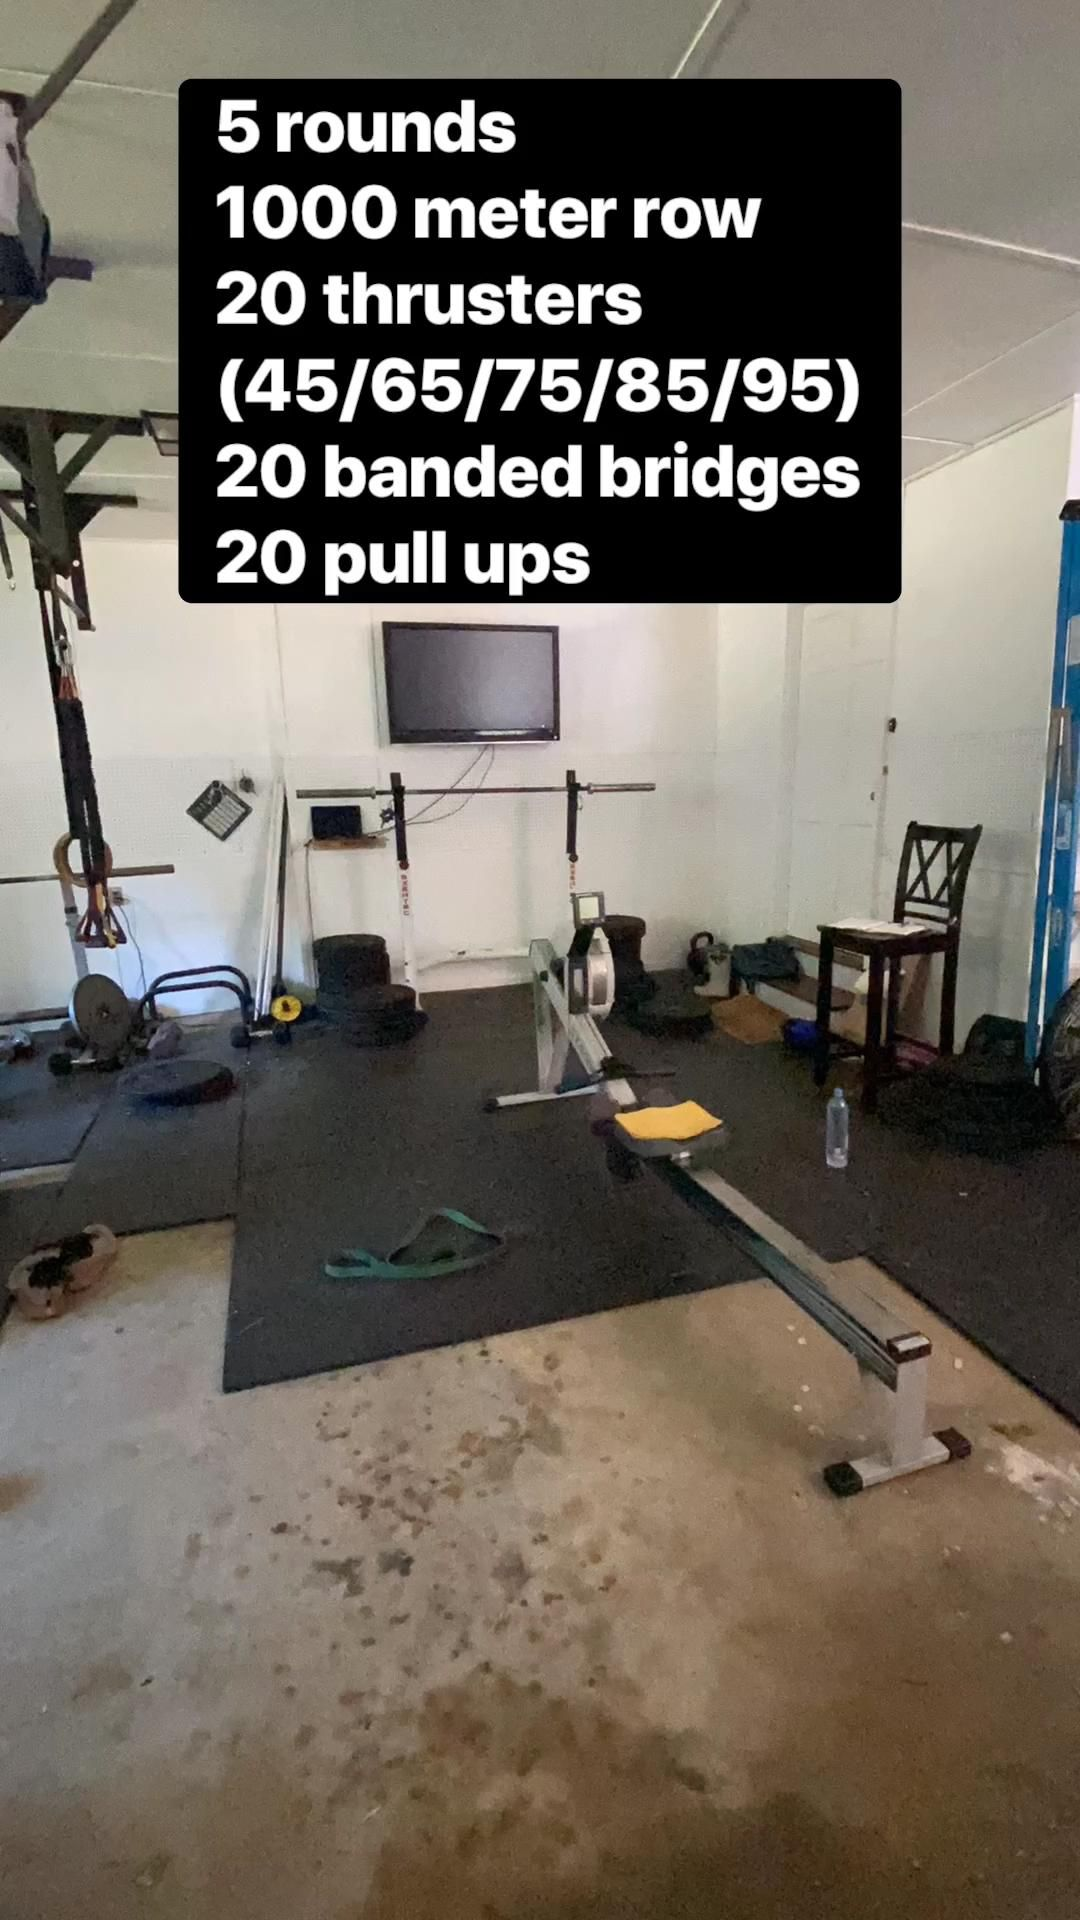 5 Rounds 1000 meters row 20 thrusters (45/46/75/85/95) 20 banded bridges 20 pull ups